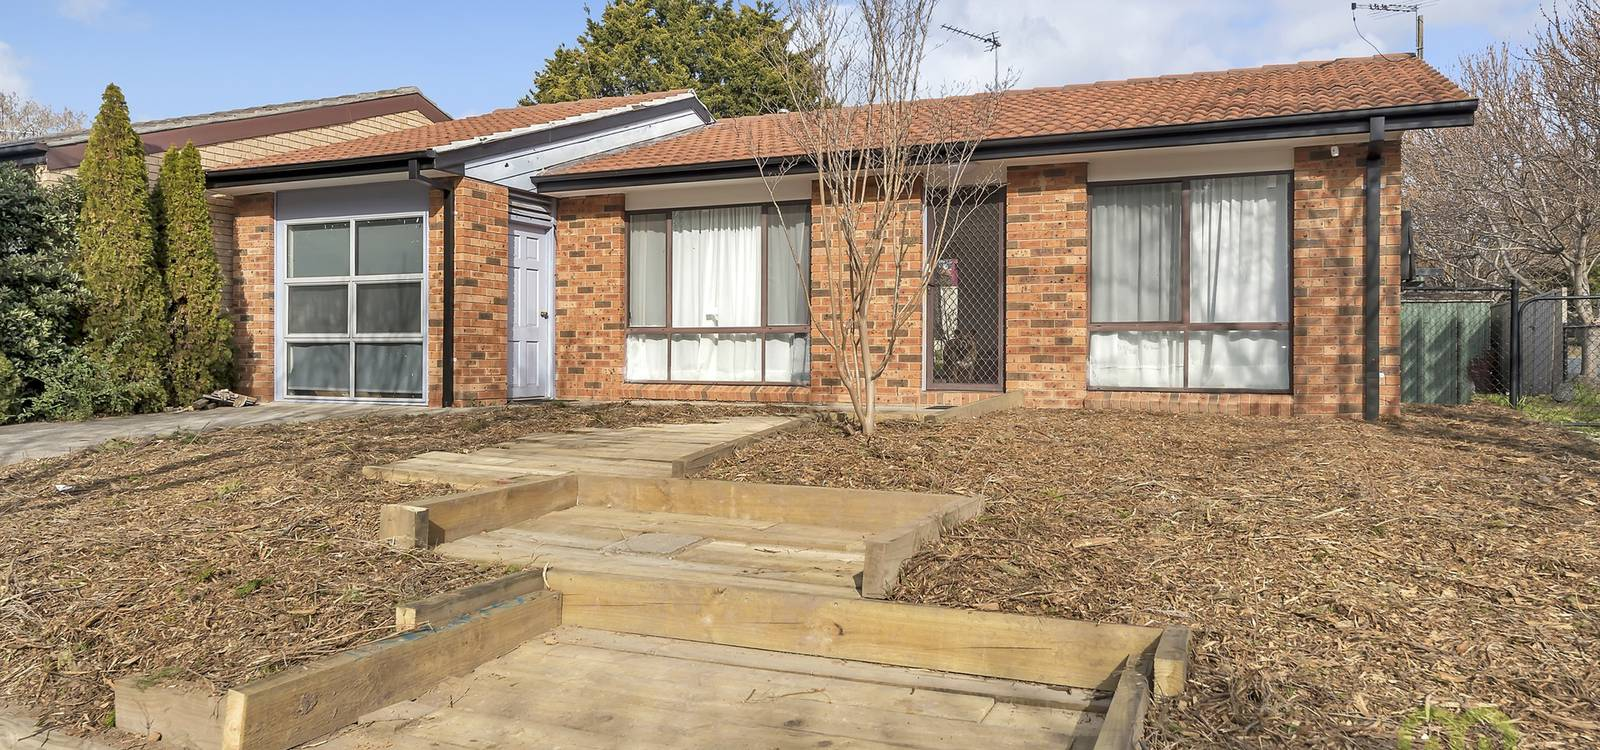 32 Reader Court BANKS, ACT 2906 - photo 1